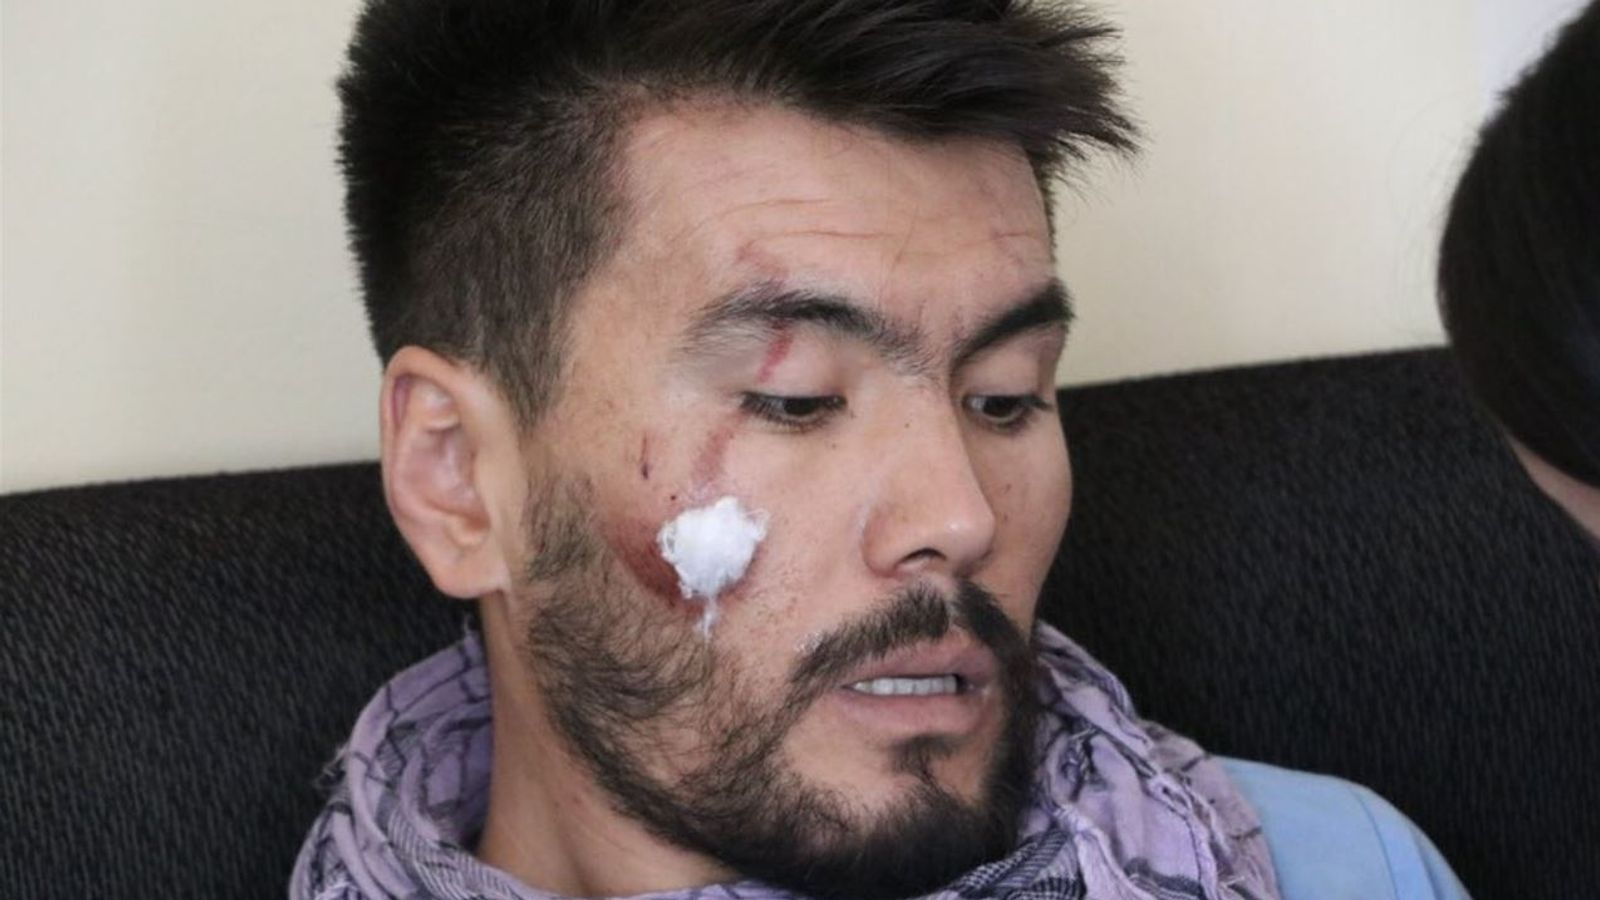 Afghanistan: Two journalists detained and beaten up for covering women's rights protests in Kabul, human rights group says